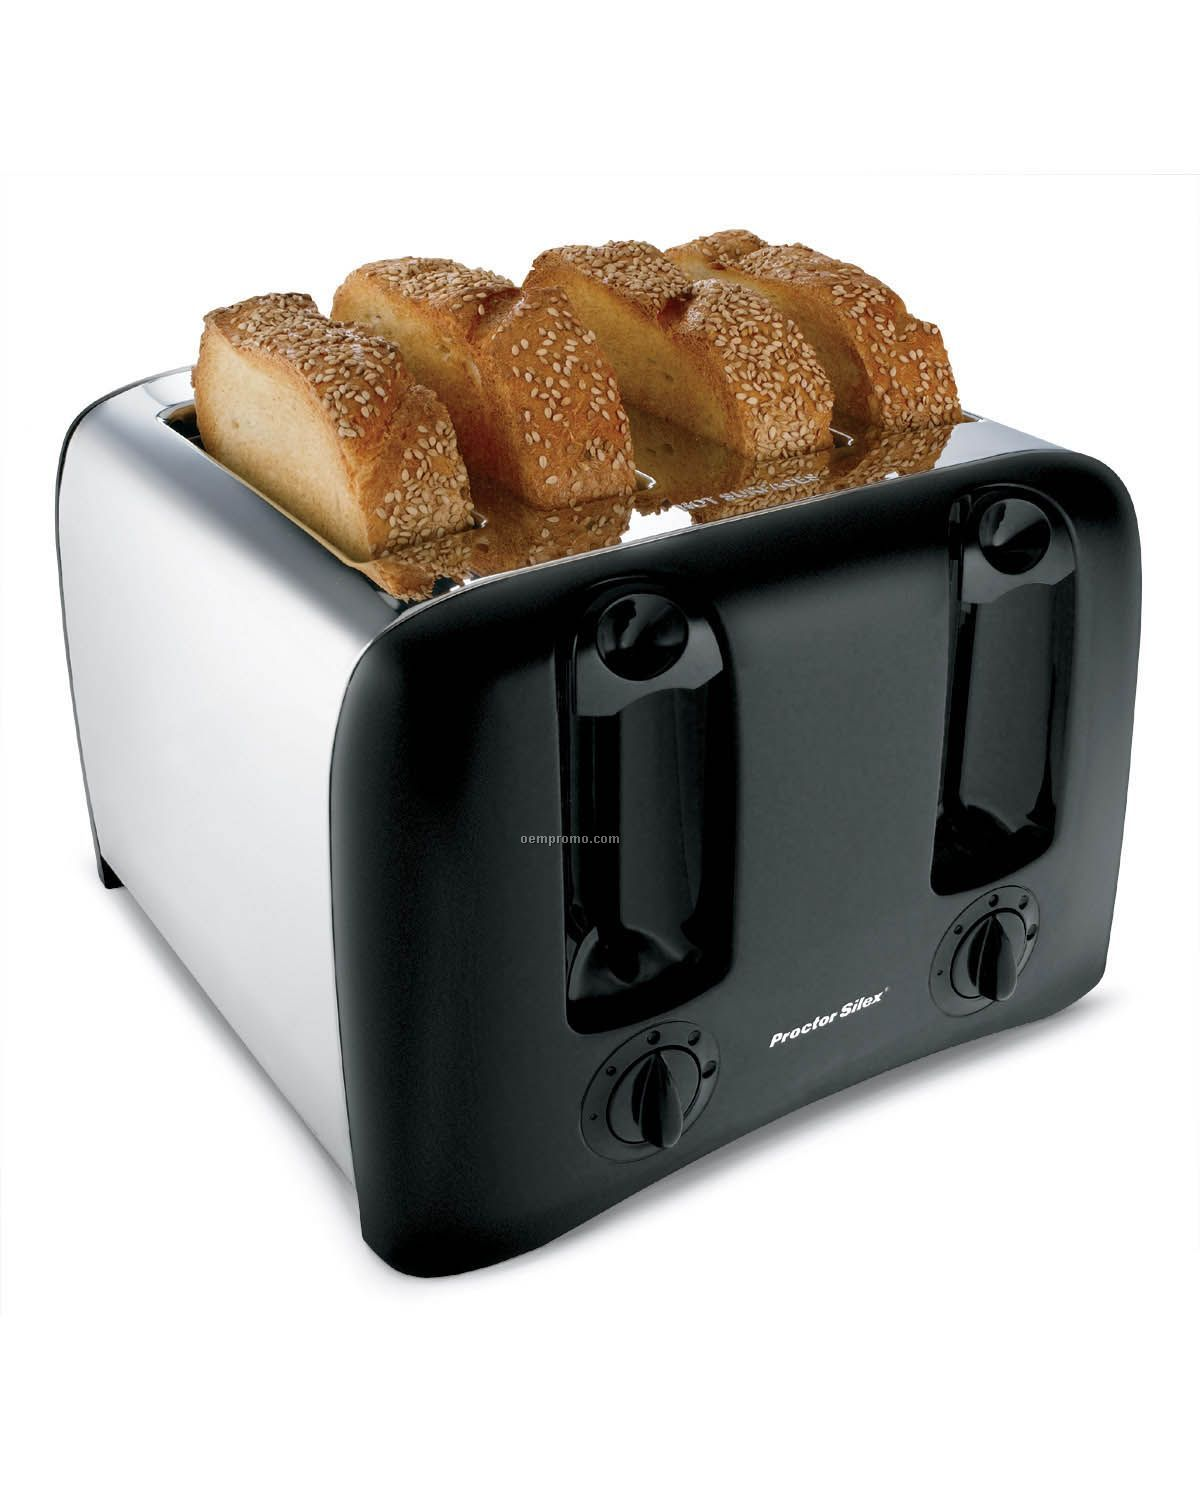 Proctor Silex 4-slice Toaster W/ Cool Wall Sides